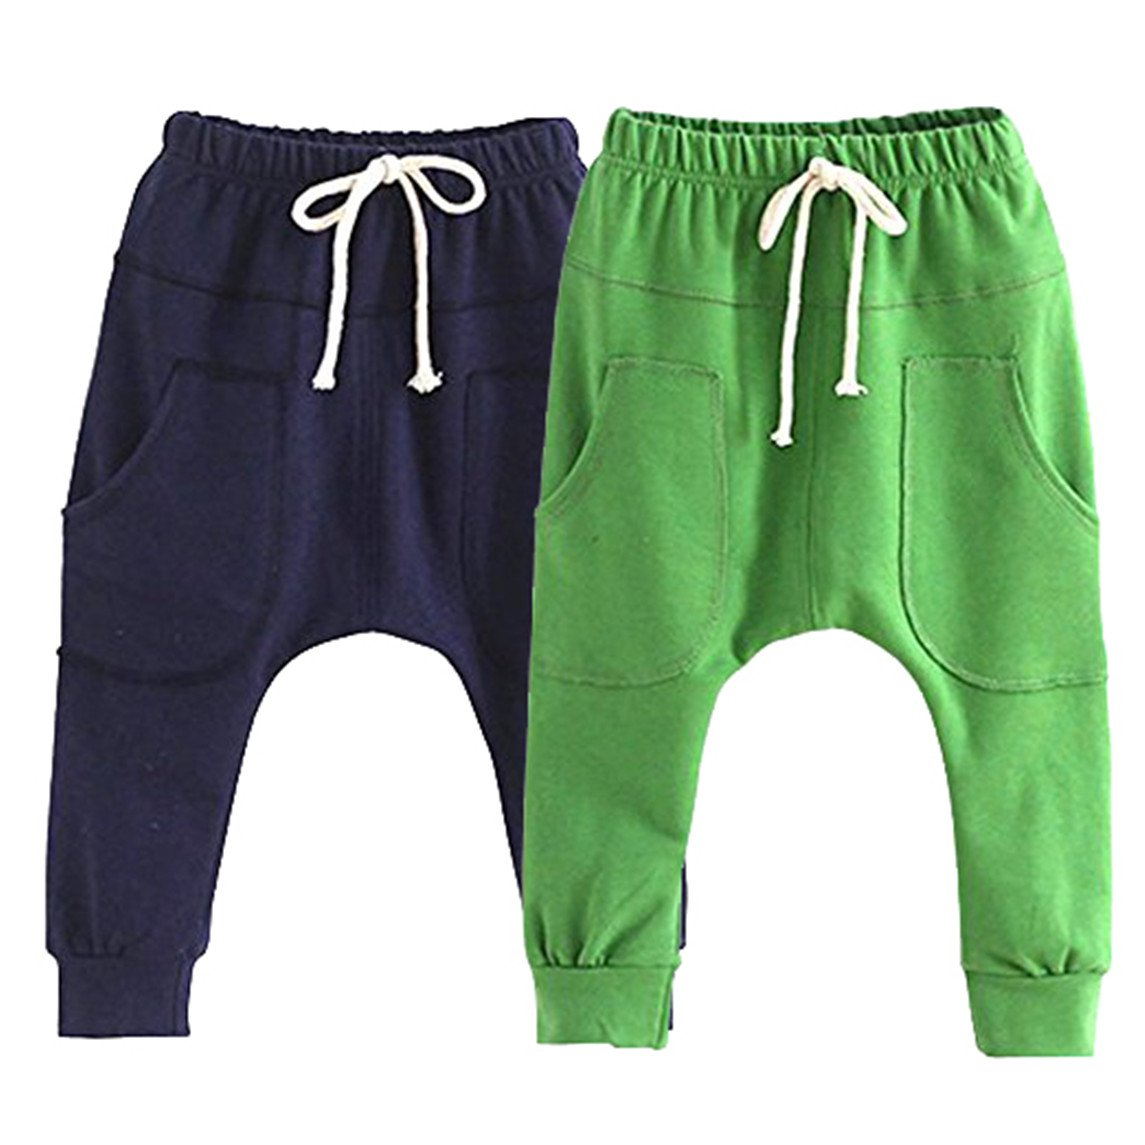 REWANGOING 2 Pack of Little Baby Boys Girls Cotton Hiphop Harem Pants Infant Sport Jogger